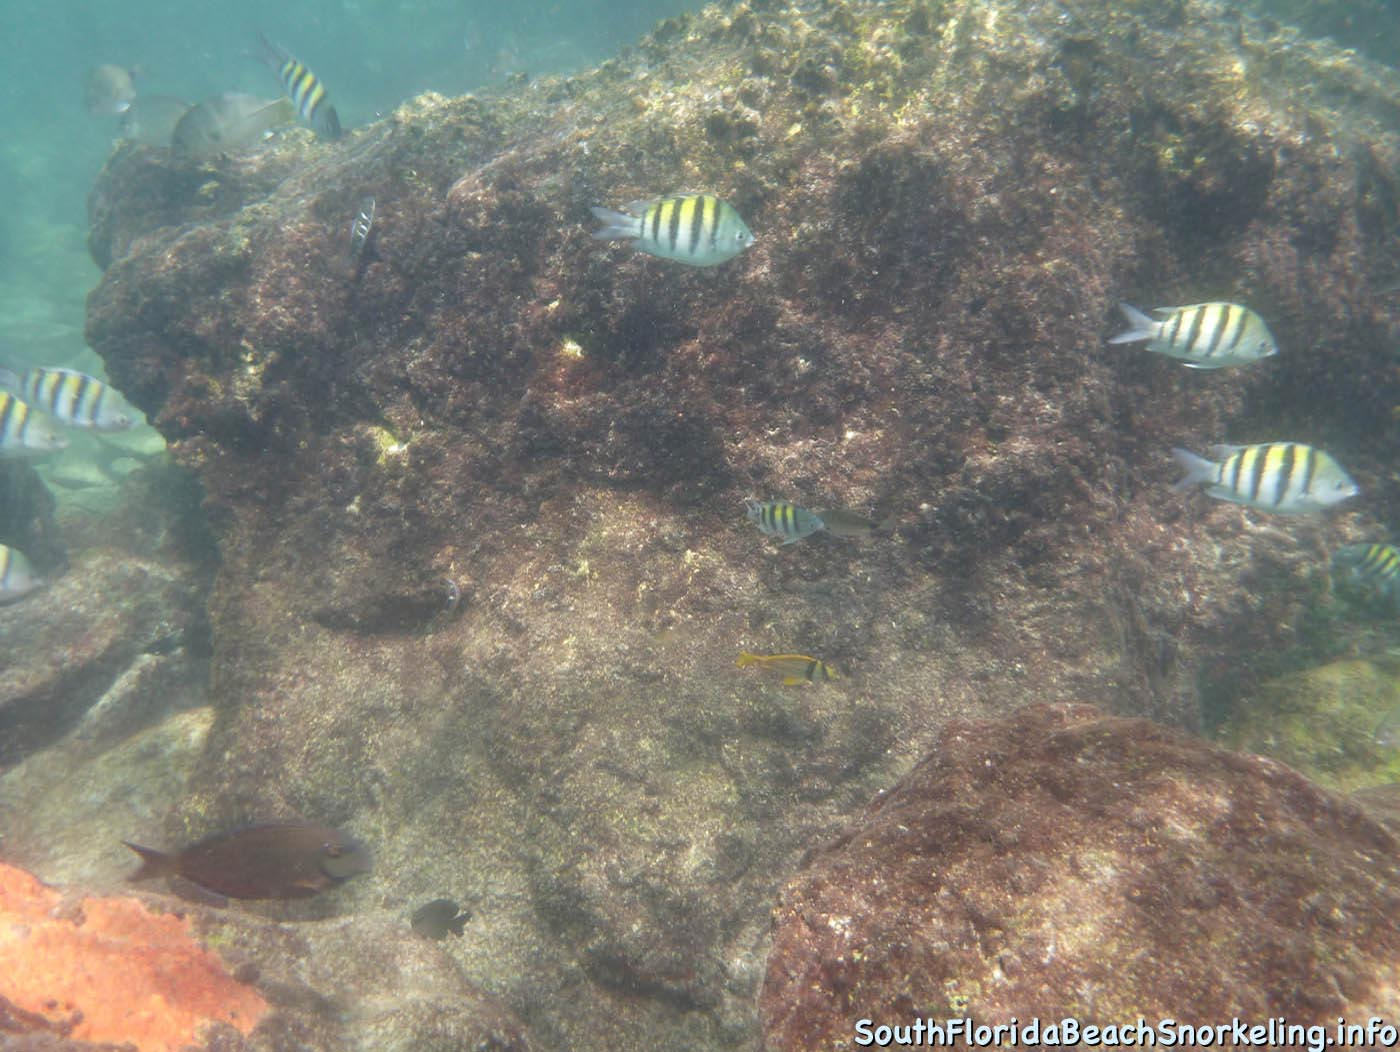 South_Side_Jetty_of_Port_of_Palm_Beach-southfloridabeachsnorkeling.info-17.jpg